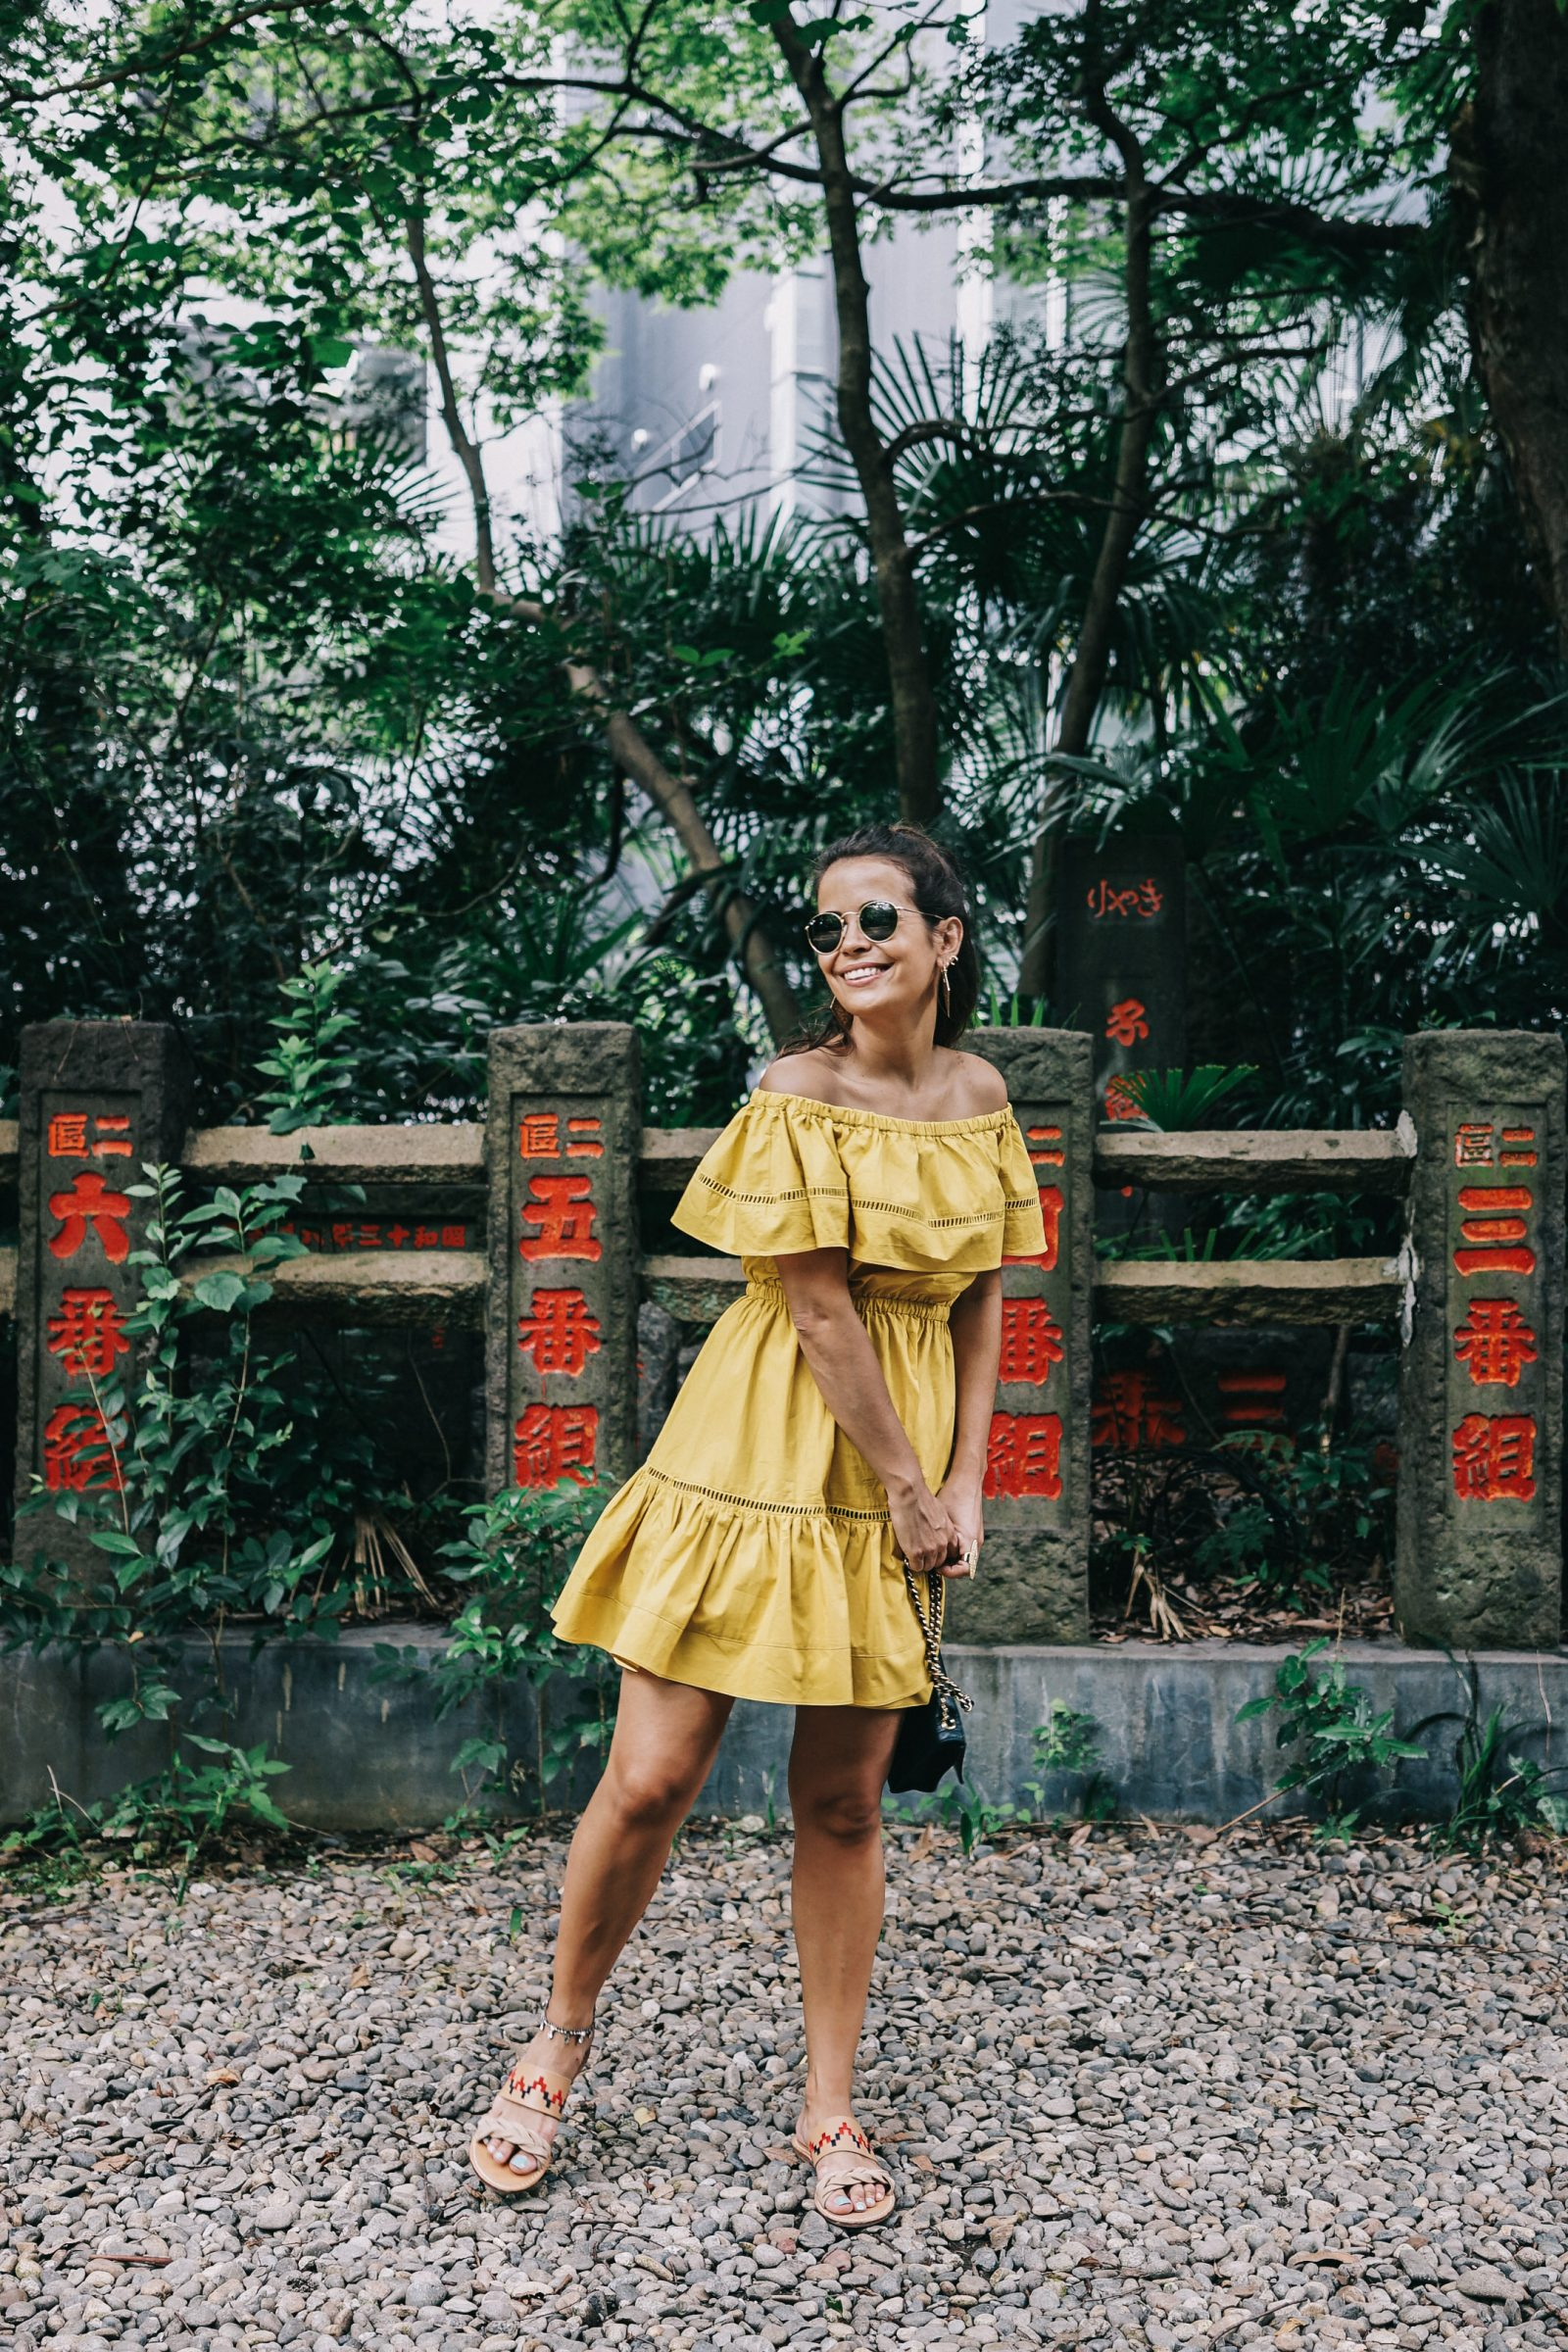 tokyo_travel_guide-outfit-collage_vintage-street_style-off_the_shoulders_dress-mustard_dress-soludos_sandals-chanel_vintage-bag-vintage_stores-25